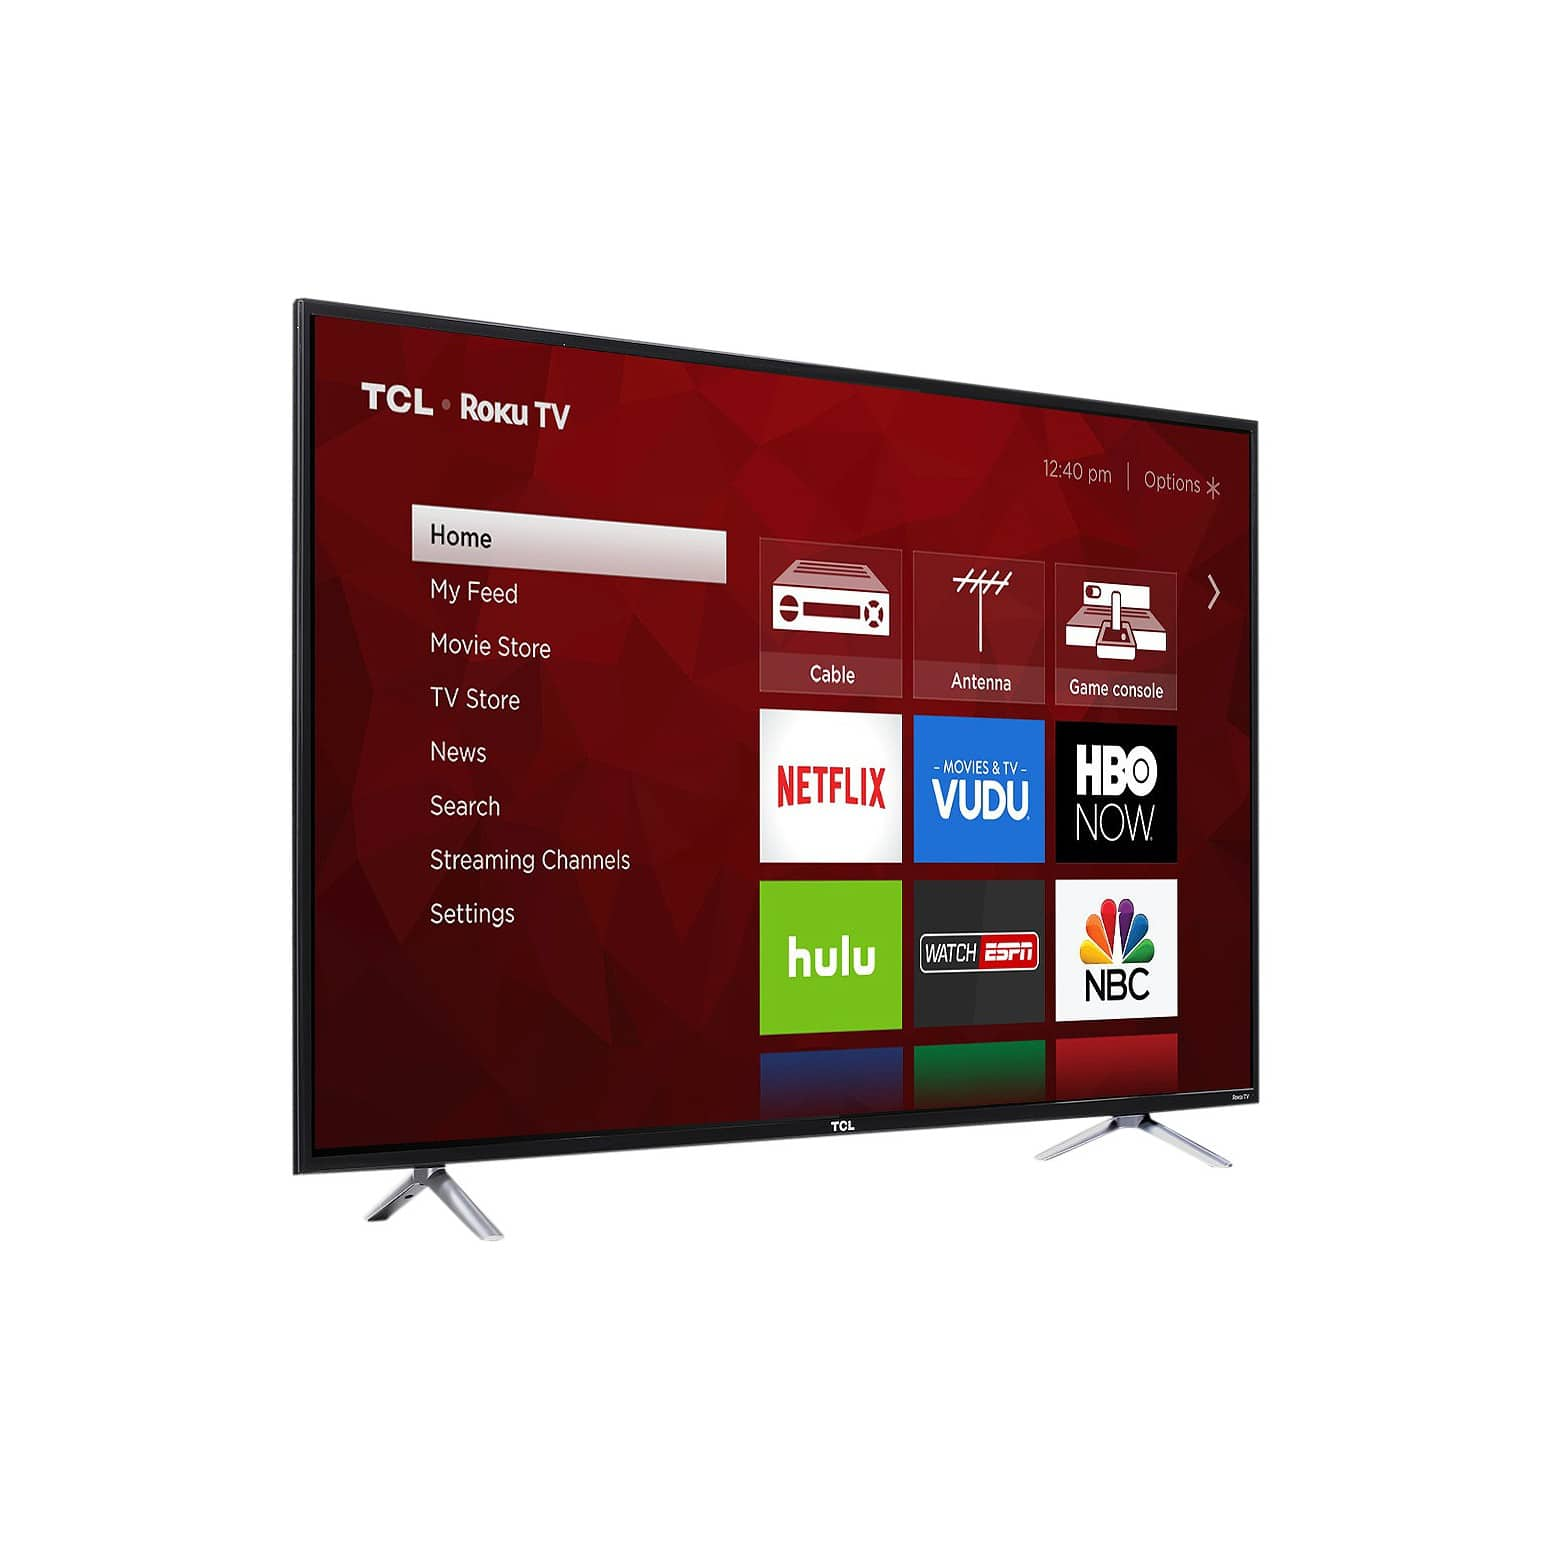 """55"""" TCL 4k UHD Roku TV (model 55S403/55S405) [$369.99 - Costco In-Store] [+15% OFF for CyberMonday on Target.com]"""